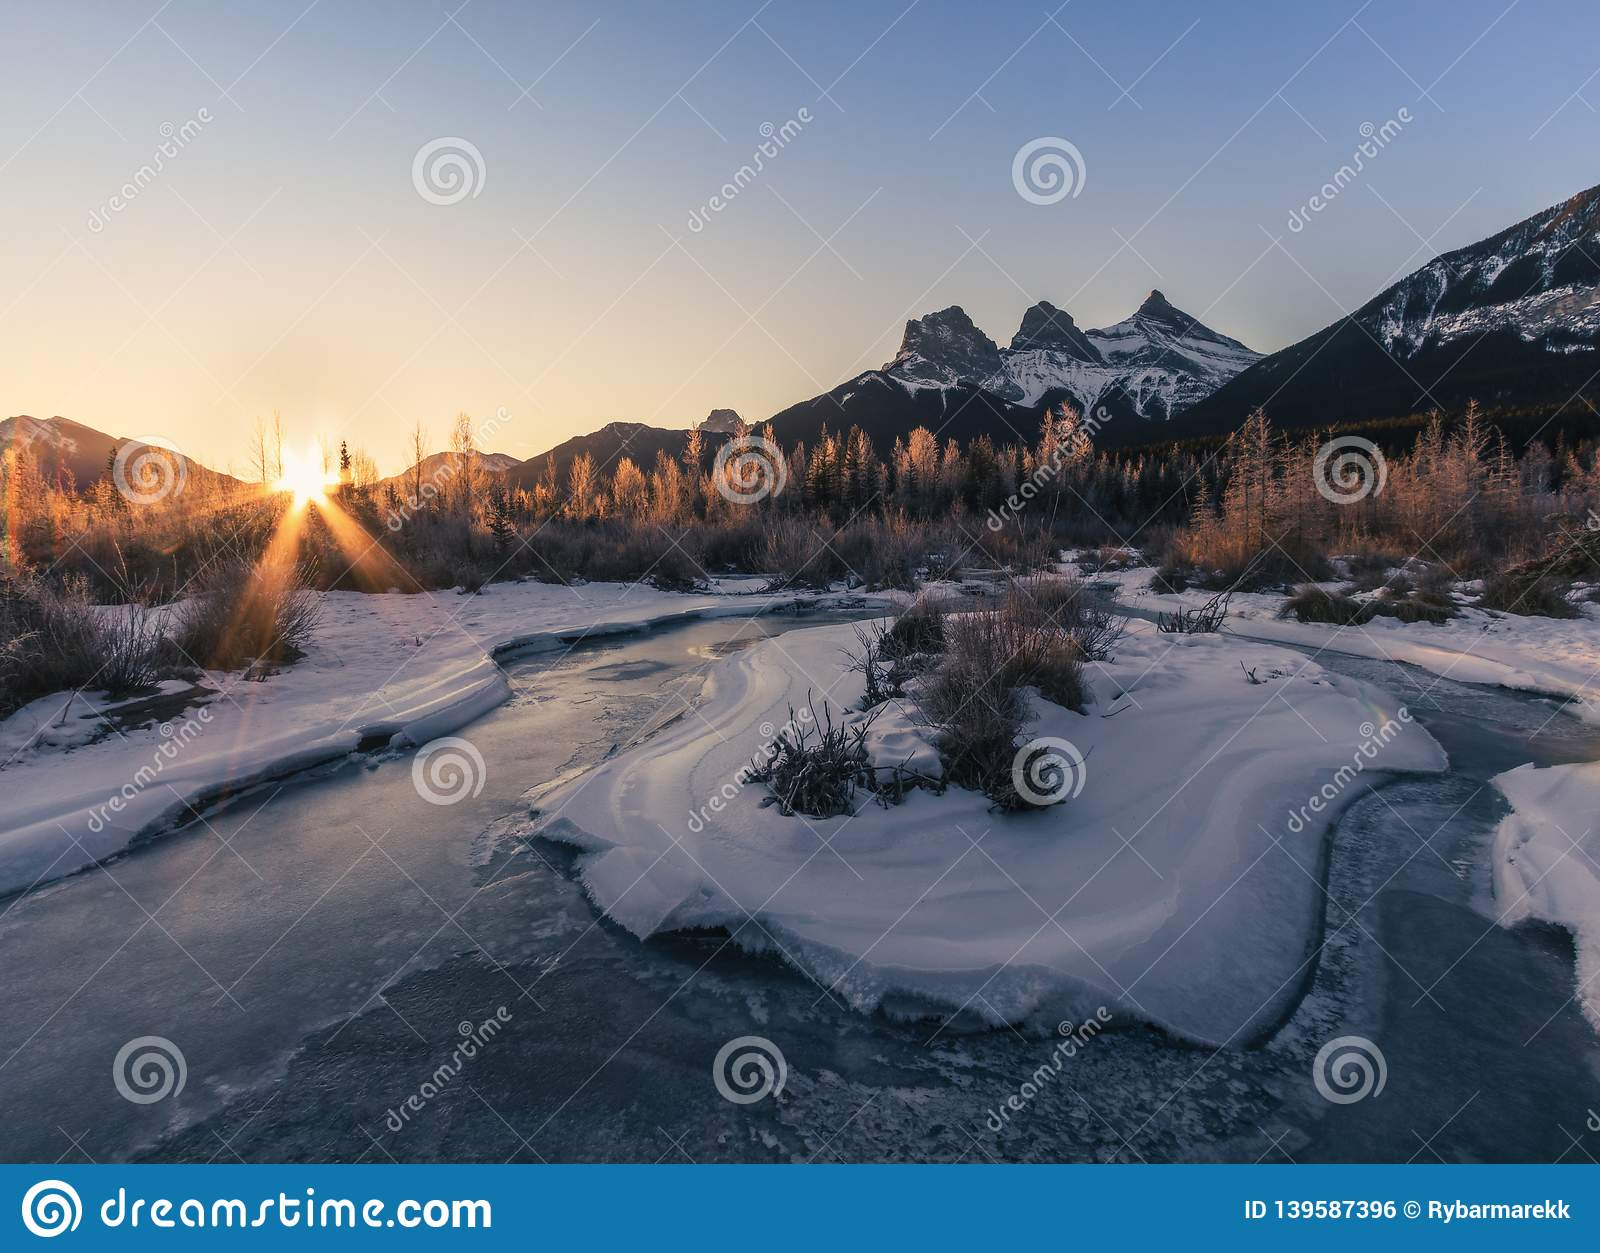 Sunrise above The Three Sisters, Canmore, Travel Alberta, Banff National Park, Canada, North America, Canadian Rockies